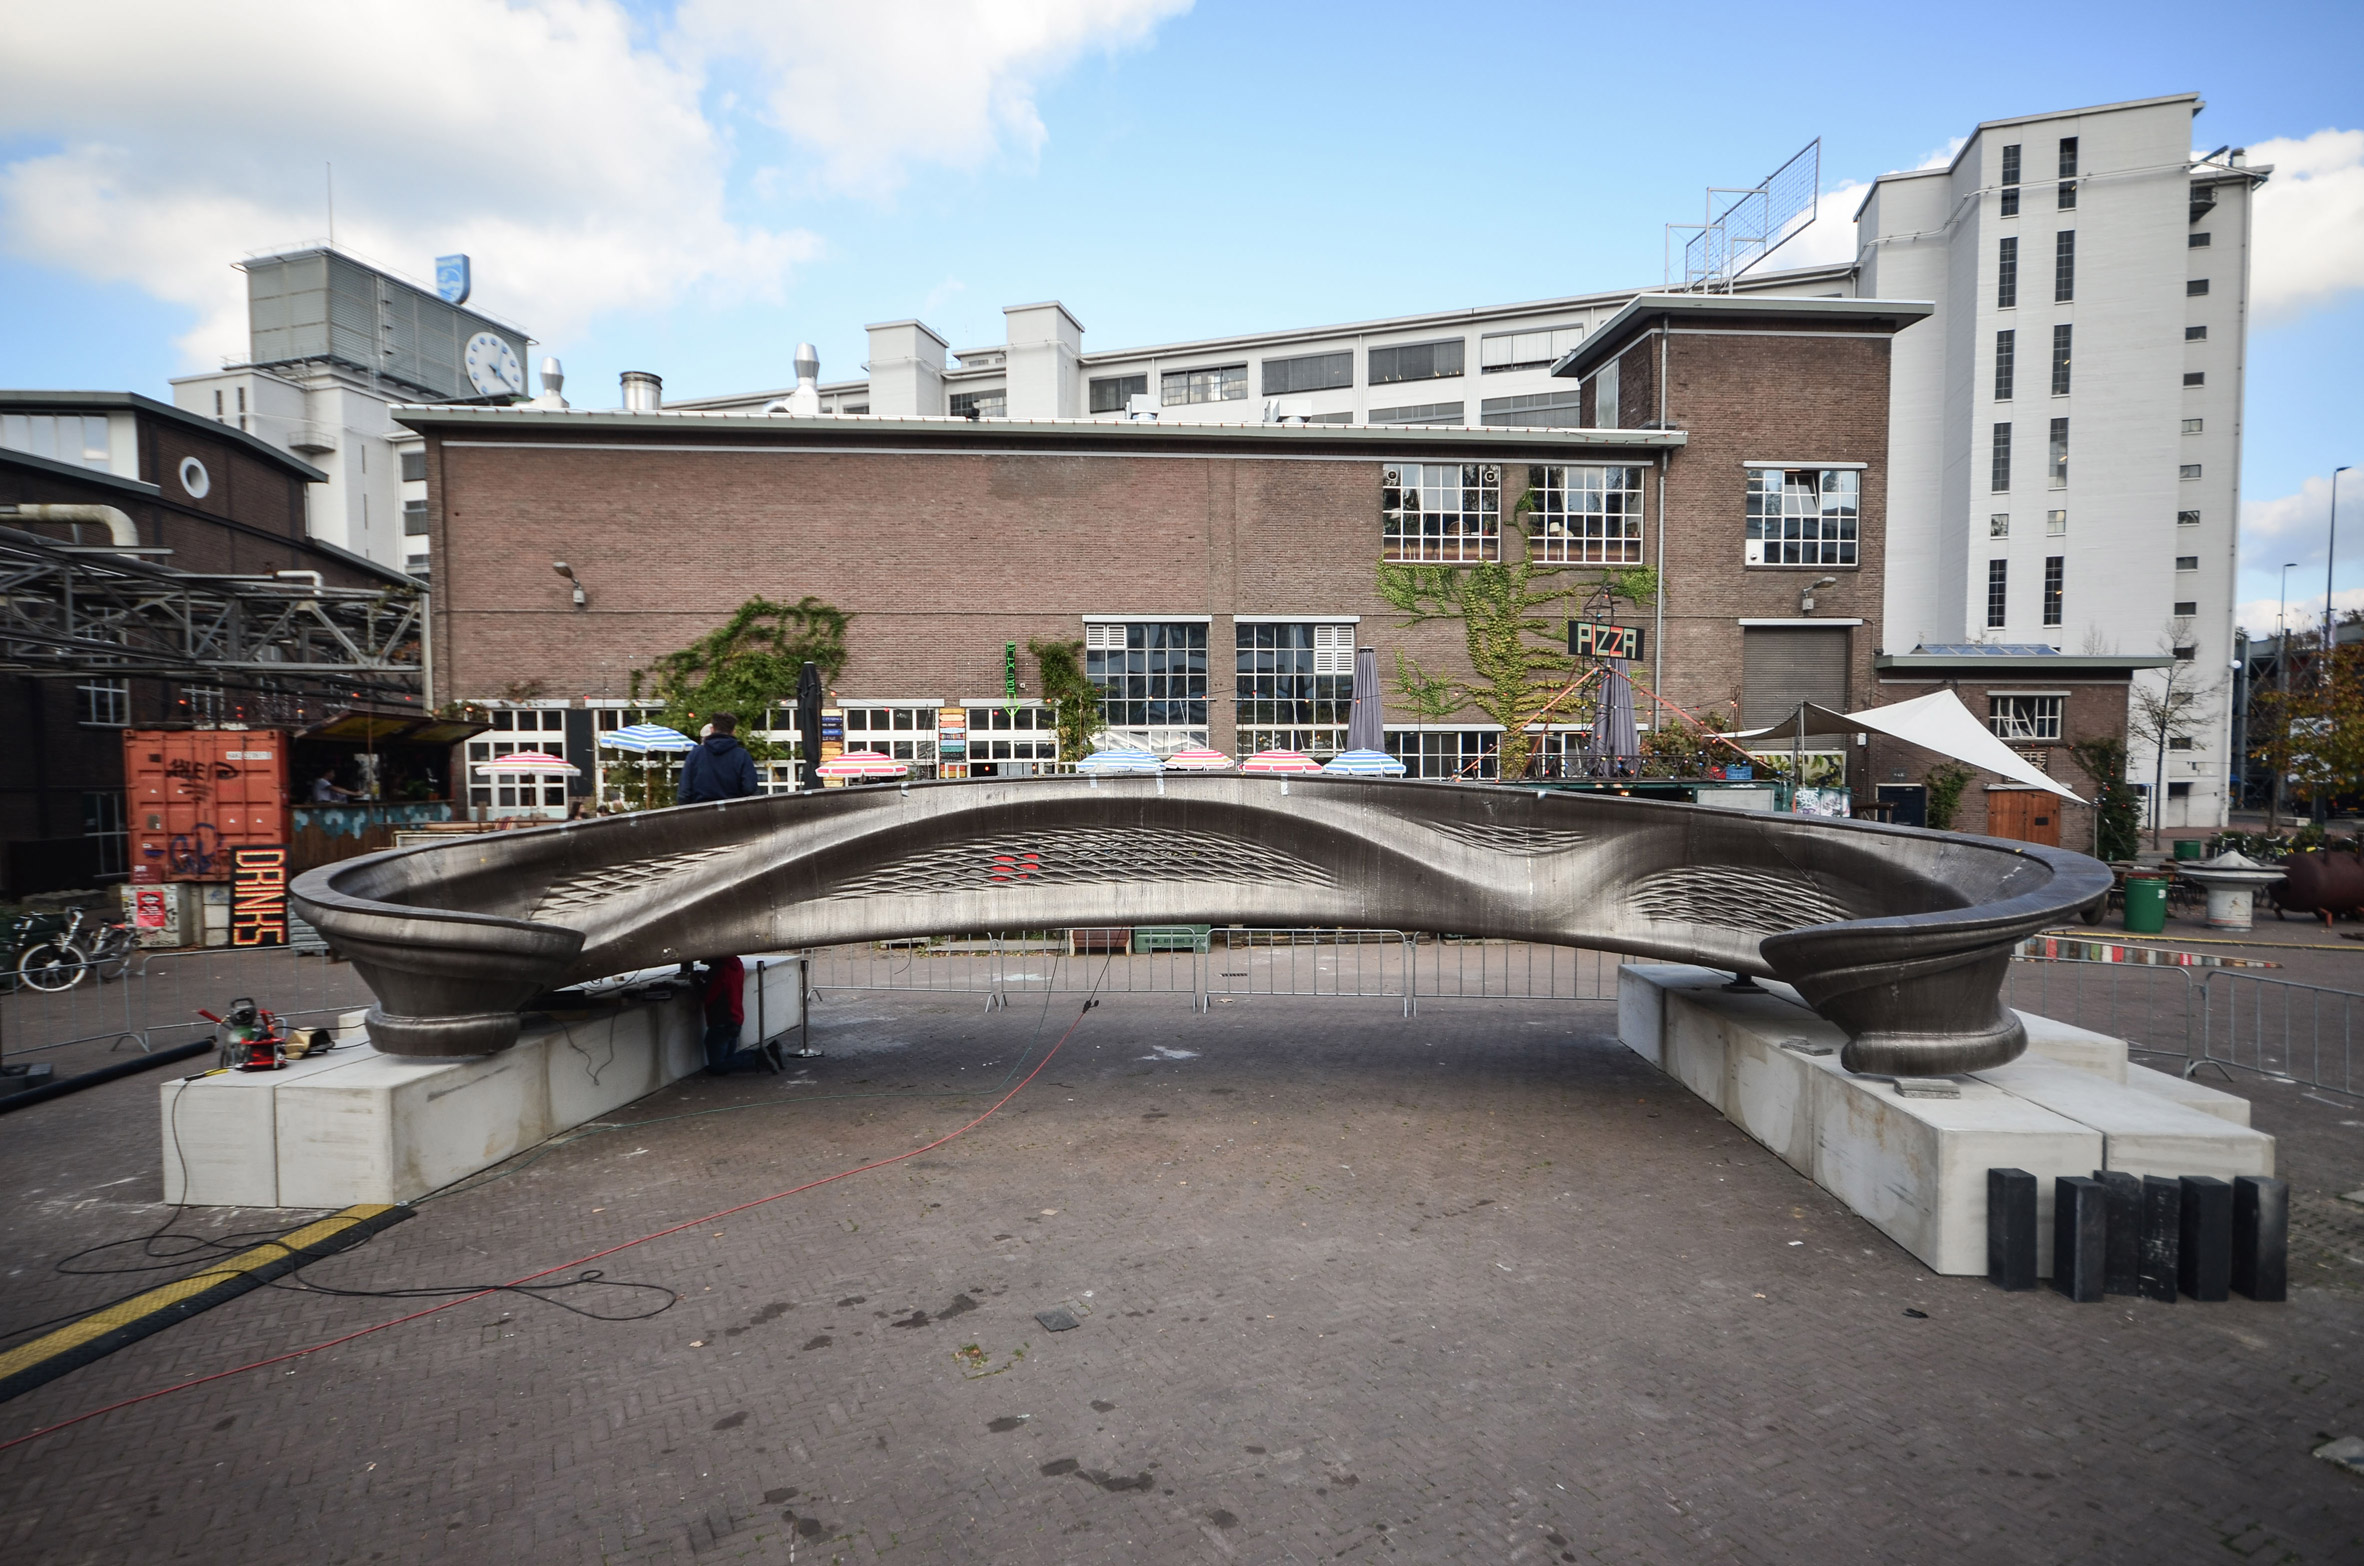 World's first 3D-printed steel bridge unveiled at Dutch Design Week